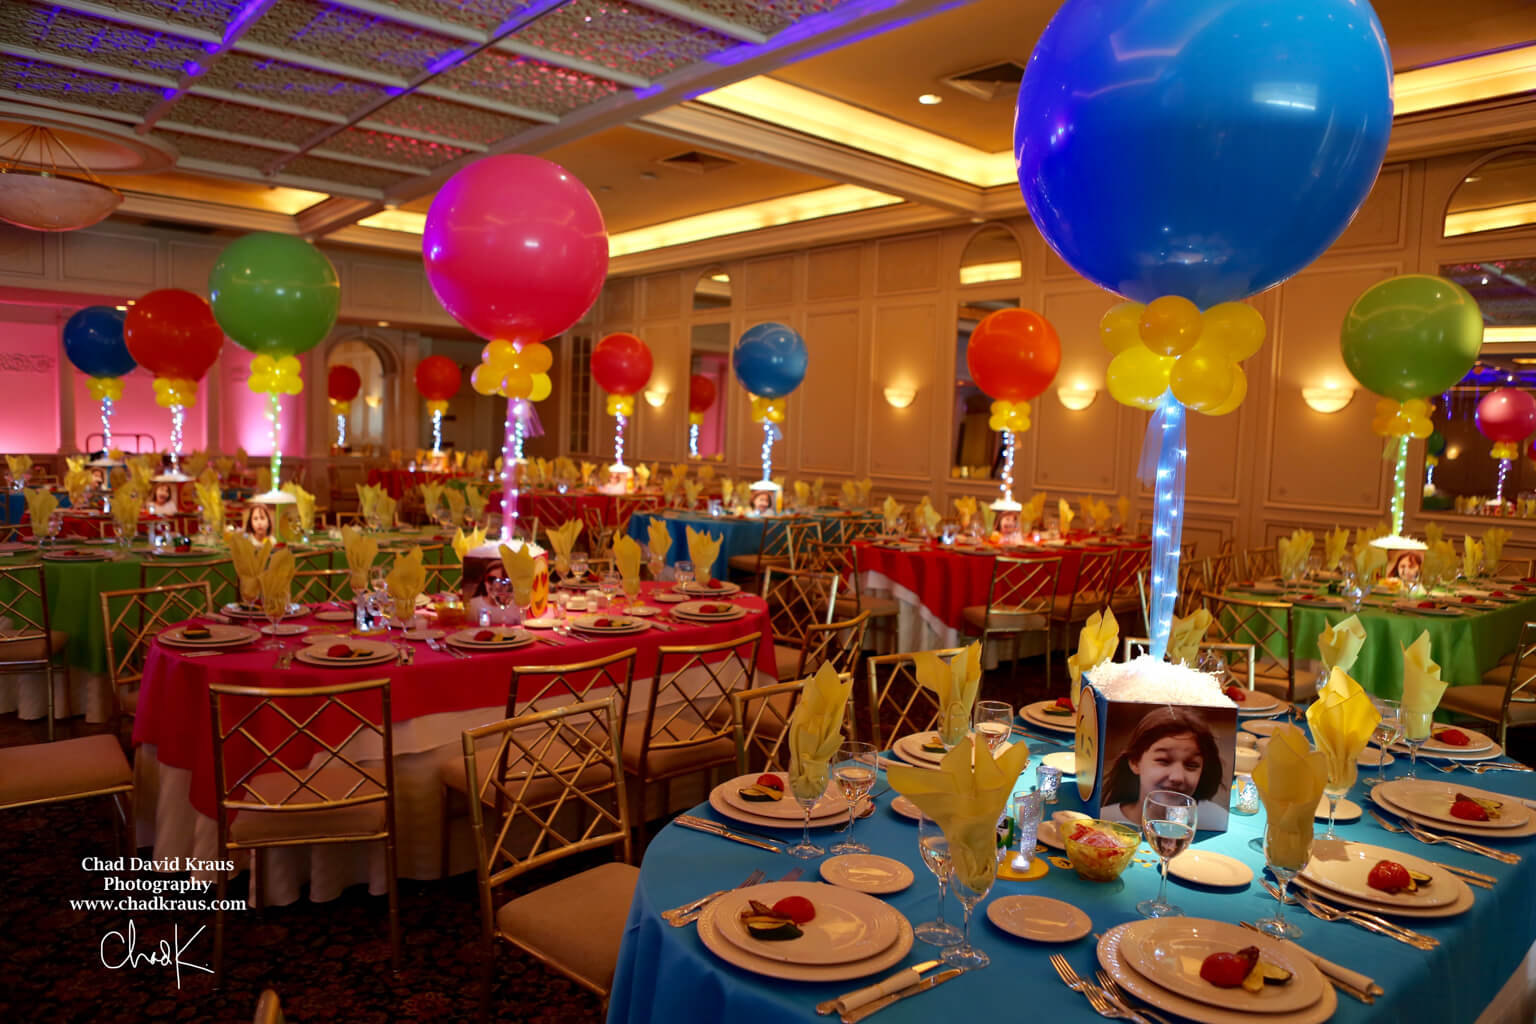 Emoji Themed Bat Mitzvah With Custom Photo Cube Centerpieces Large Balloons Lights At The